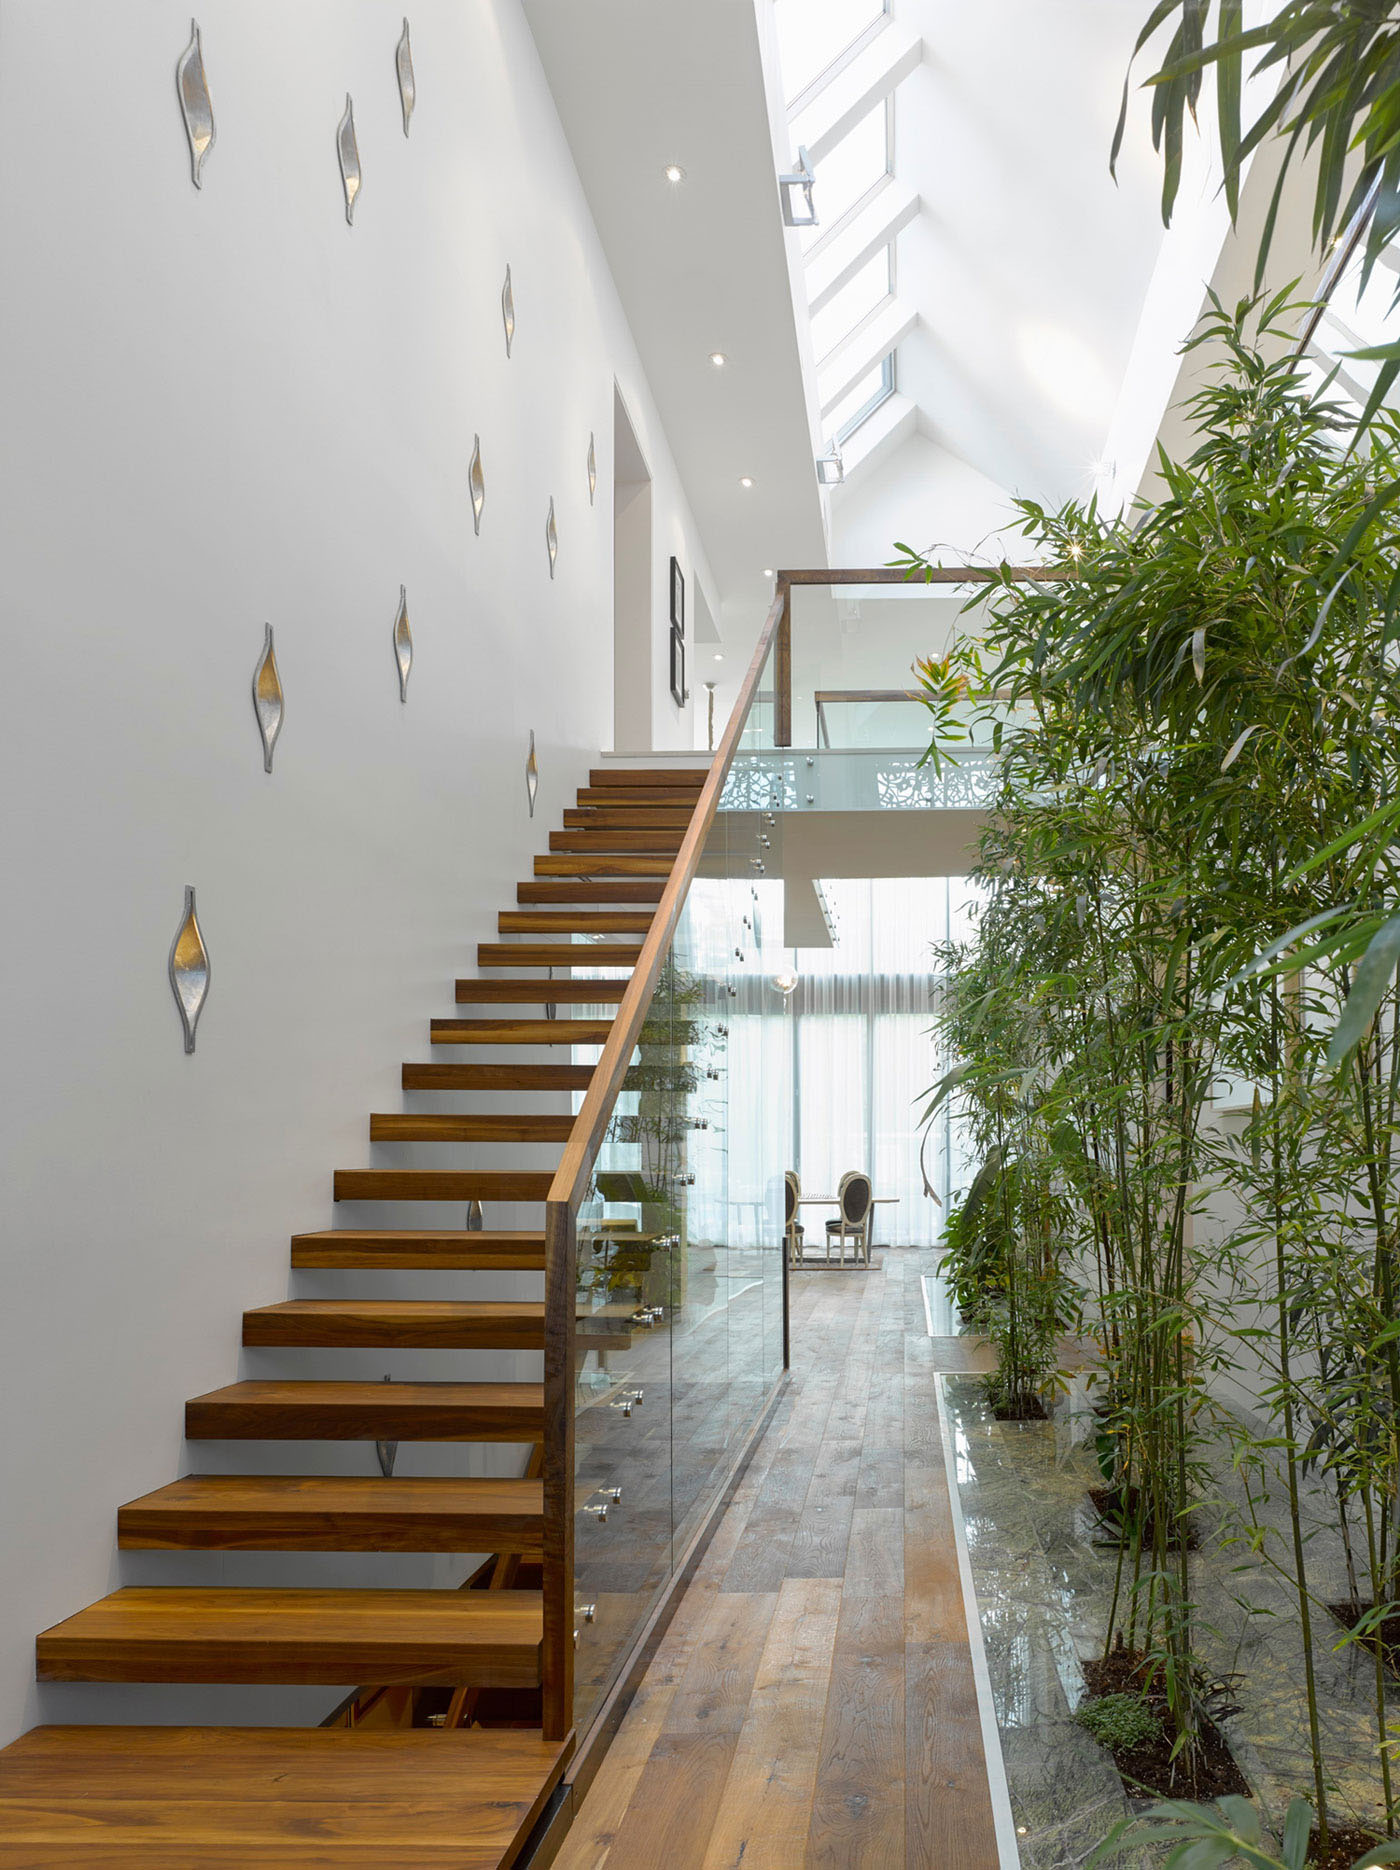 Atrium with Glass Staircase and Bamboo Garden